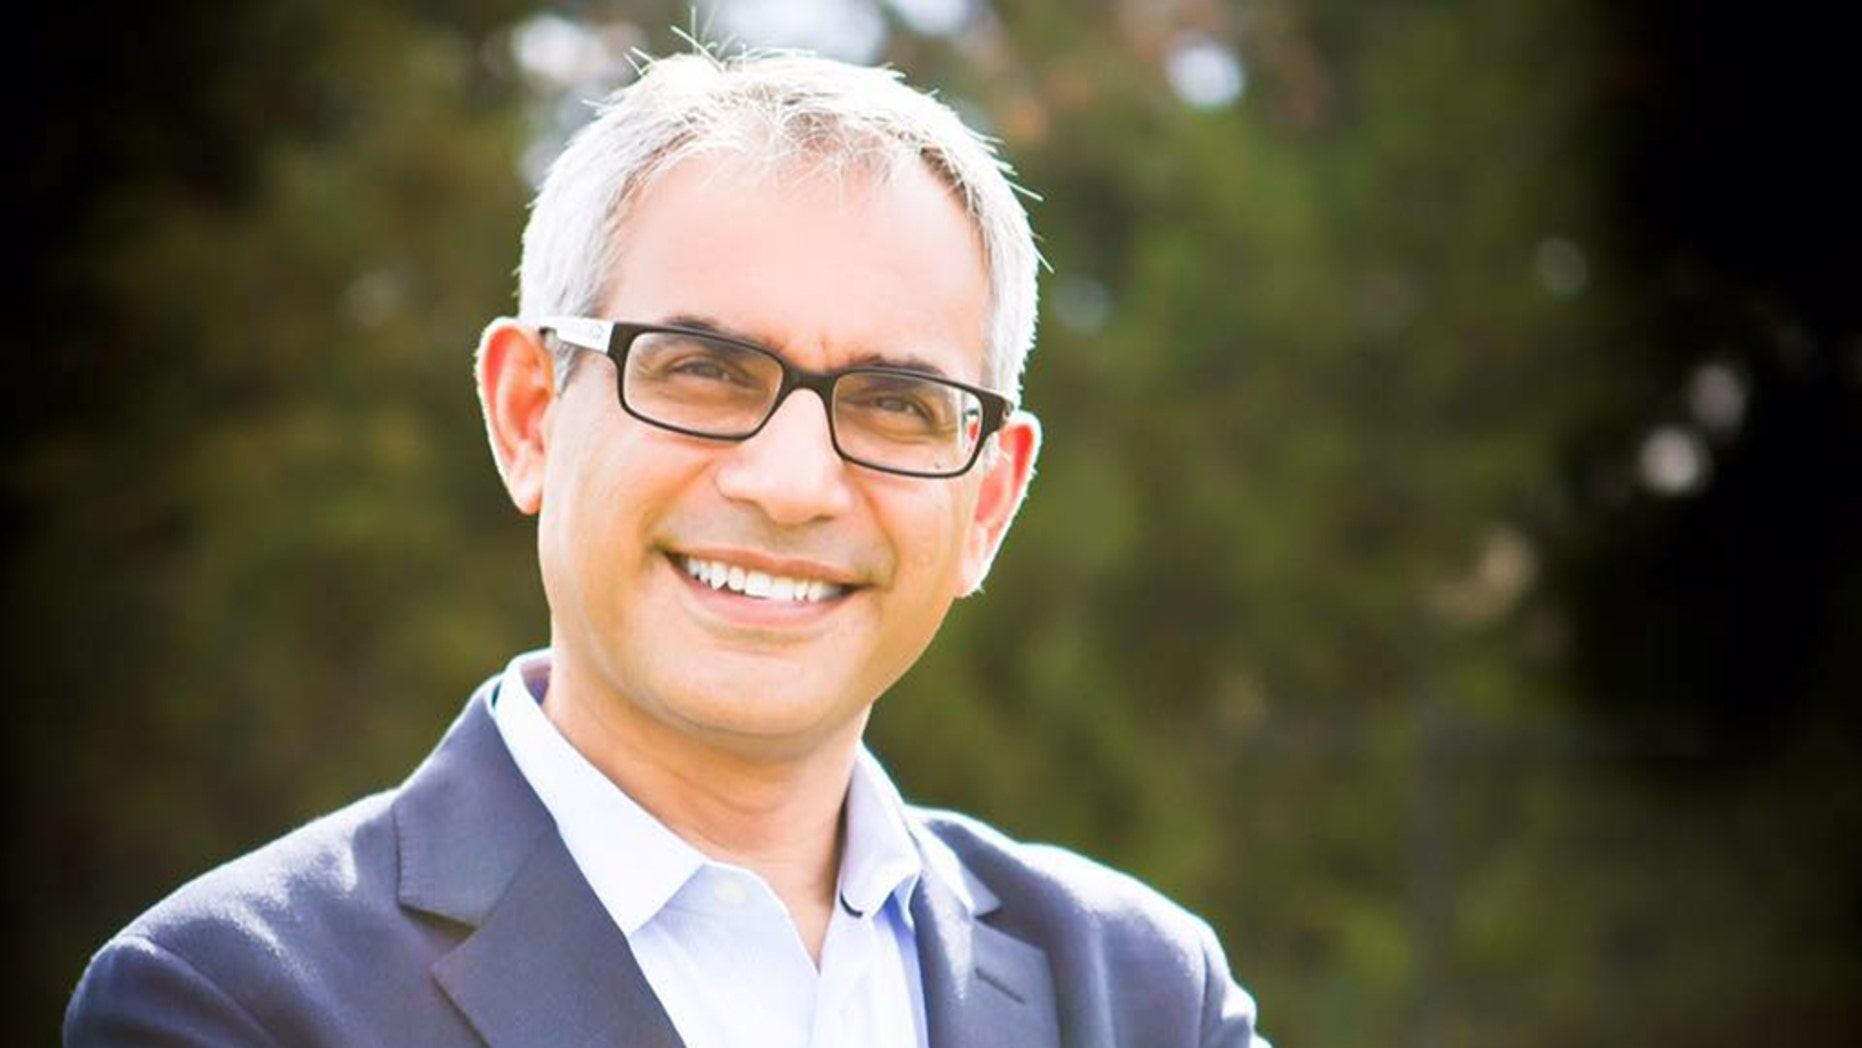 Tarrant County Republicans are set to vote on whether to remove Dr. Shahid Shafi from his position as the county party's vice chairman after a group of people complained about his religious beliefs.